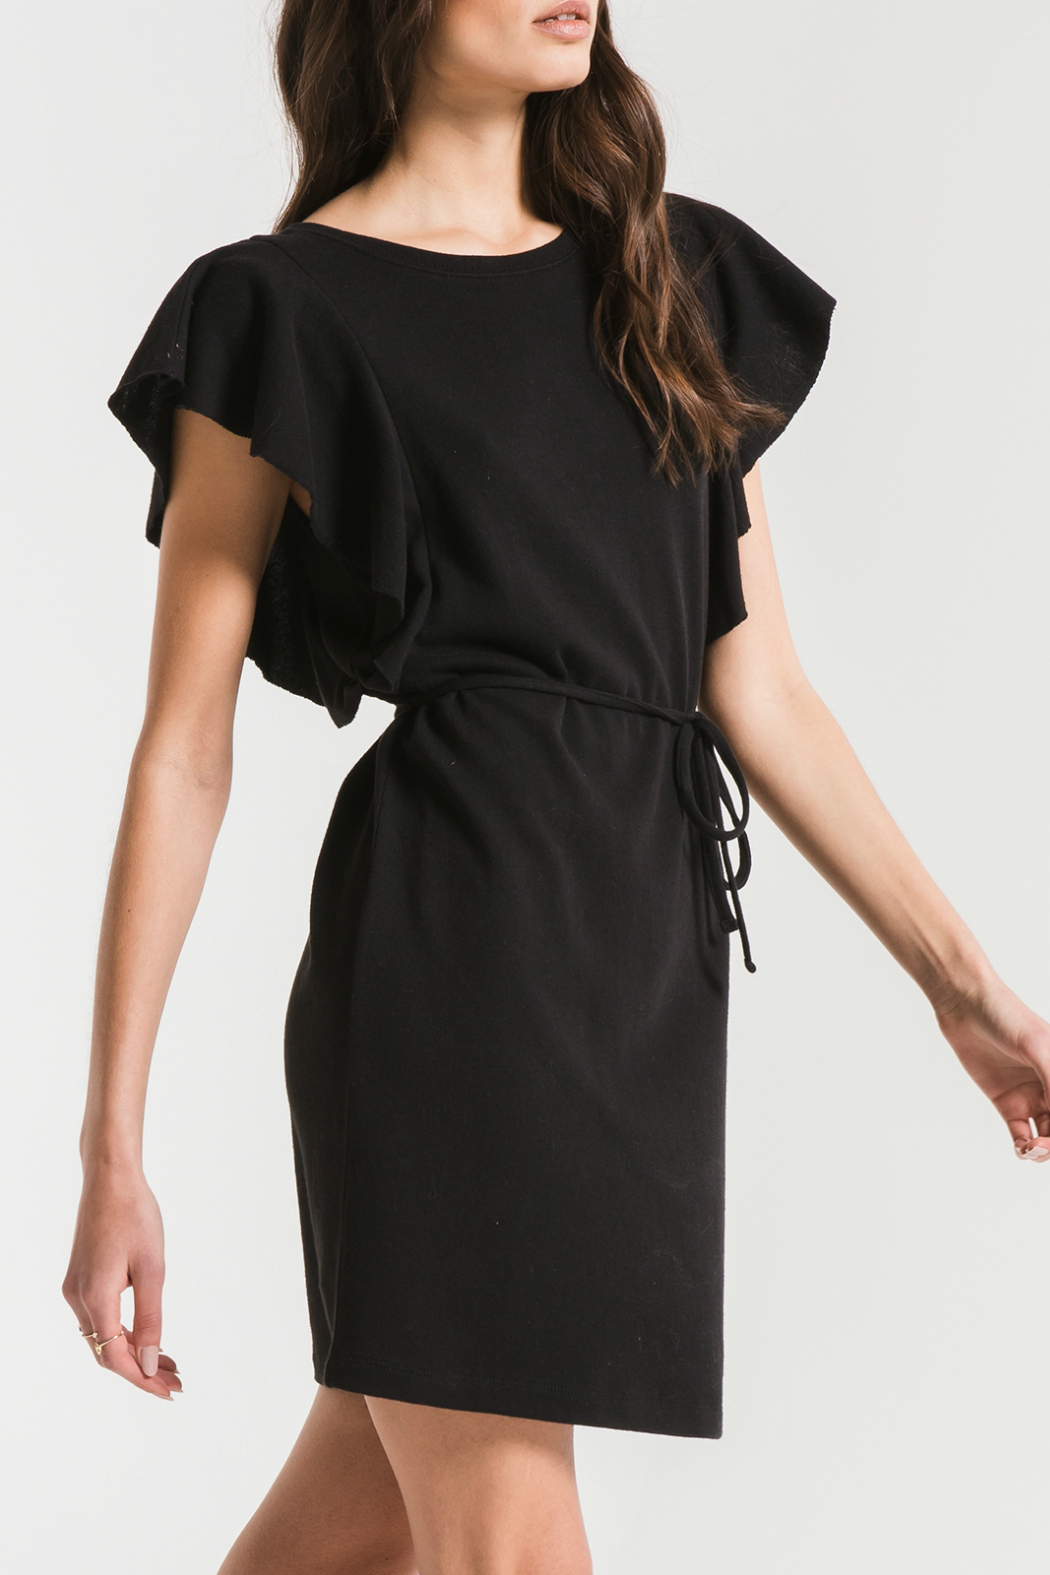 z supply Cap Ruffle Sleeve Dress - Front Full Image